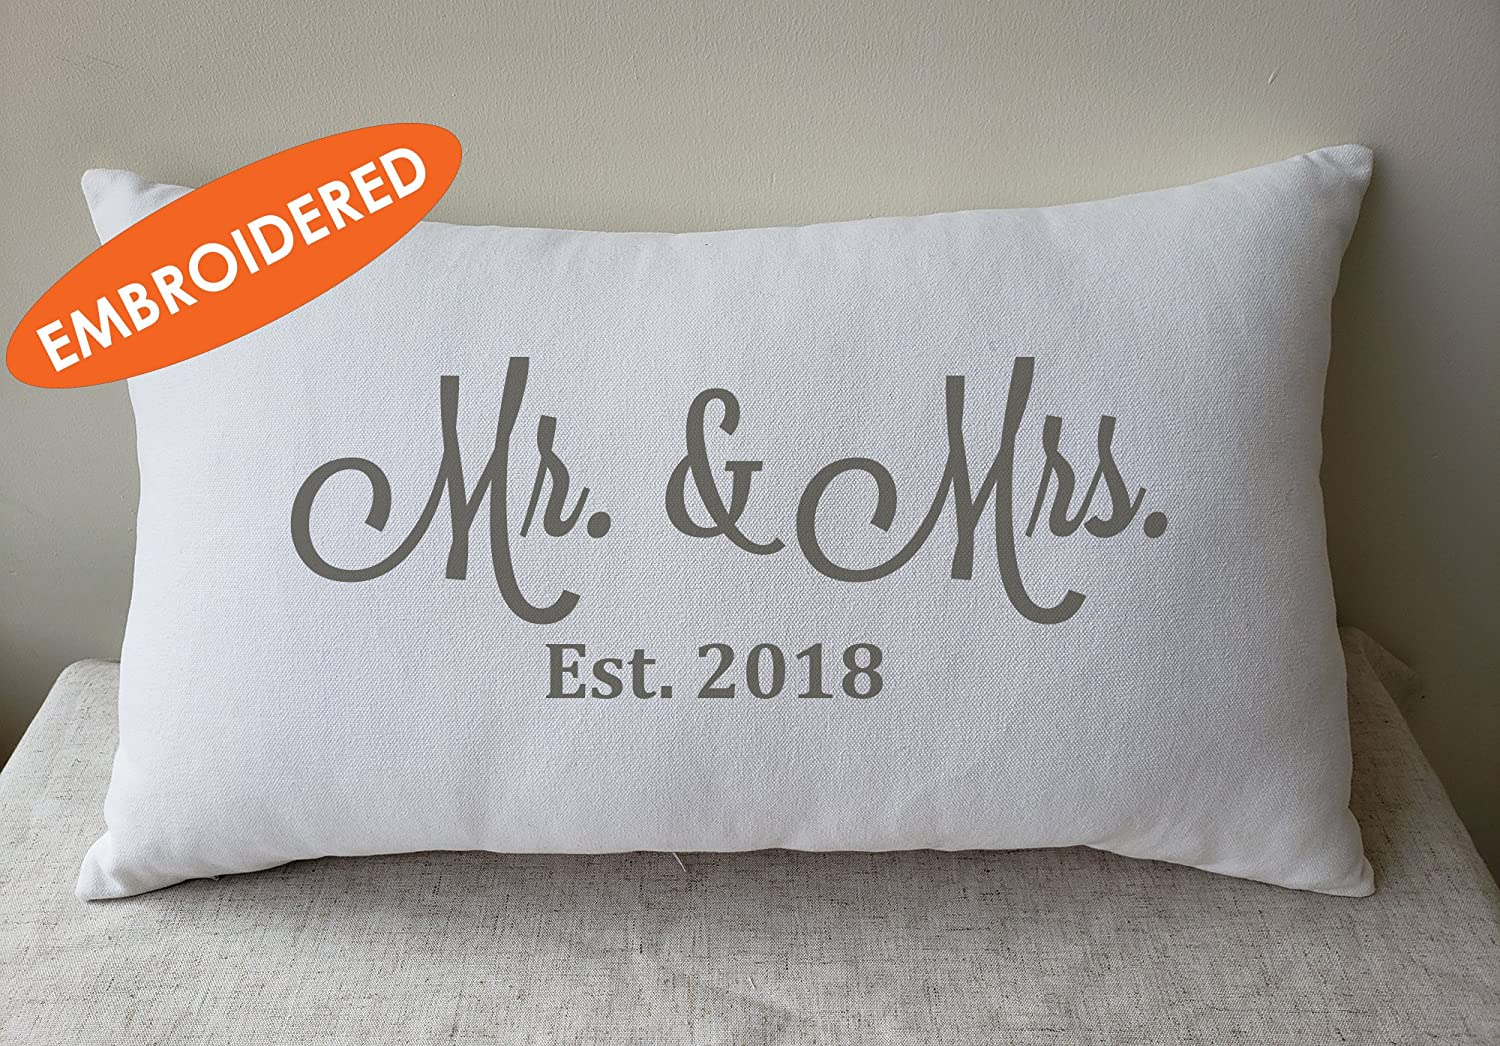 DecorHouzz Embroidered Lumbar Cushion - Mr. & Mrs,100% Organic Cotton, Calligraphy Home Decor, Shop Small, Housewarming gift, Cushion Cover